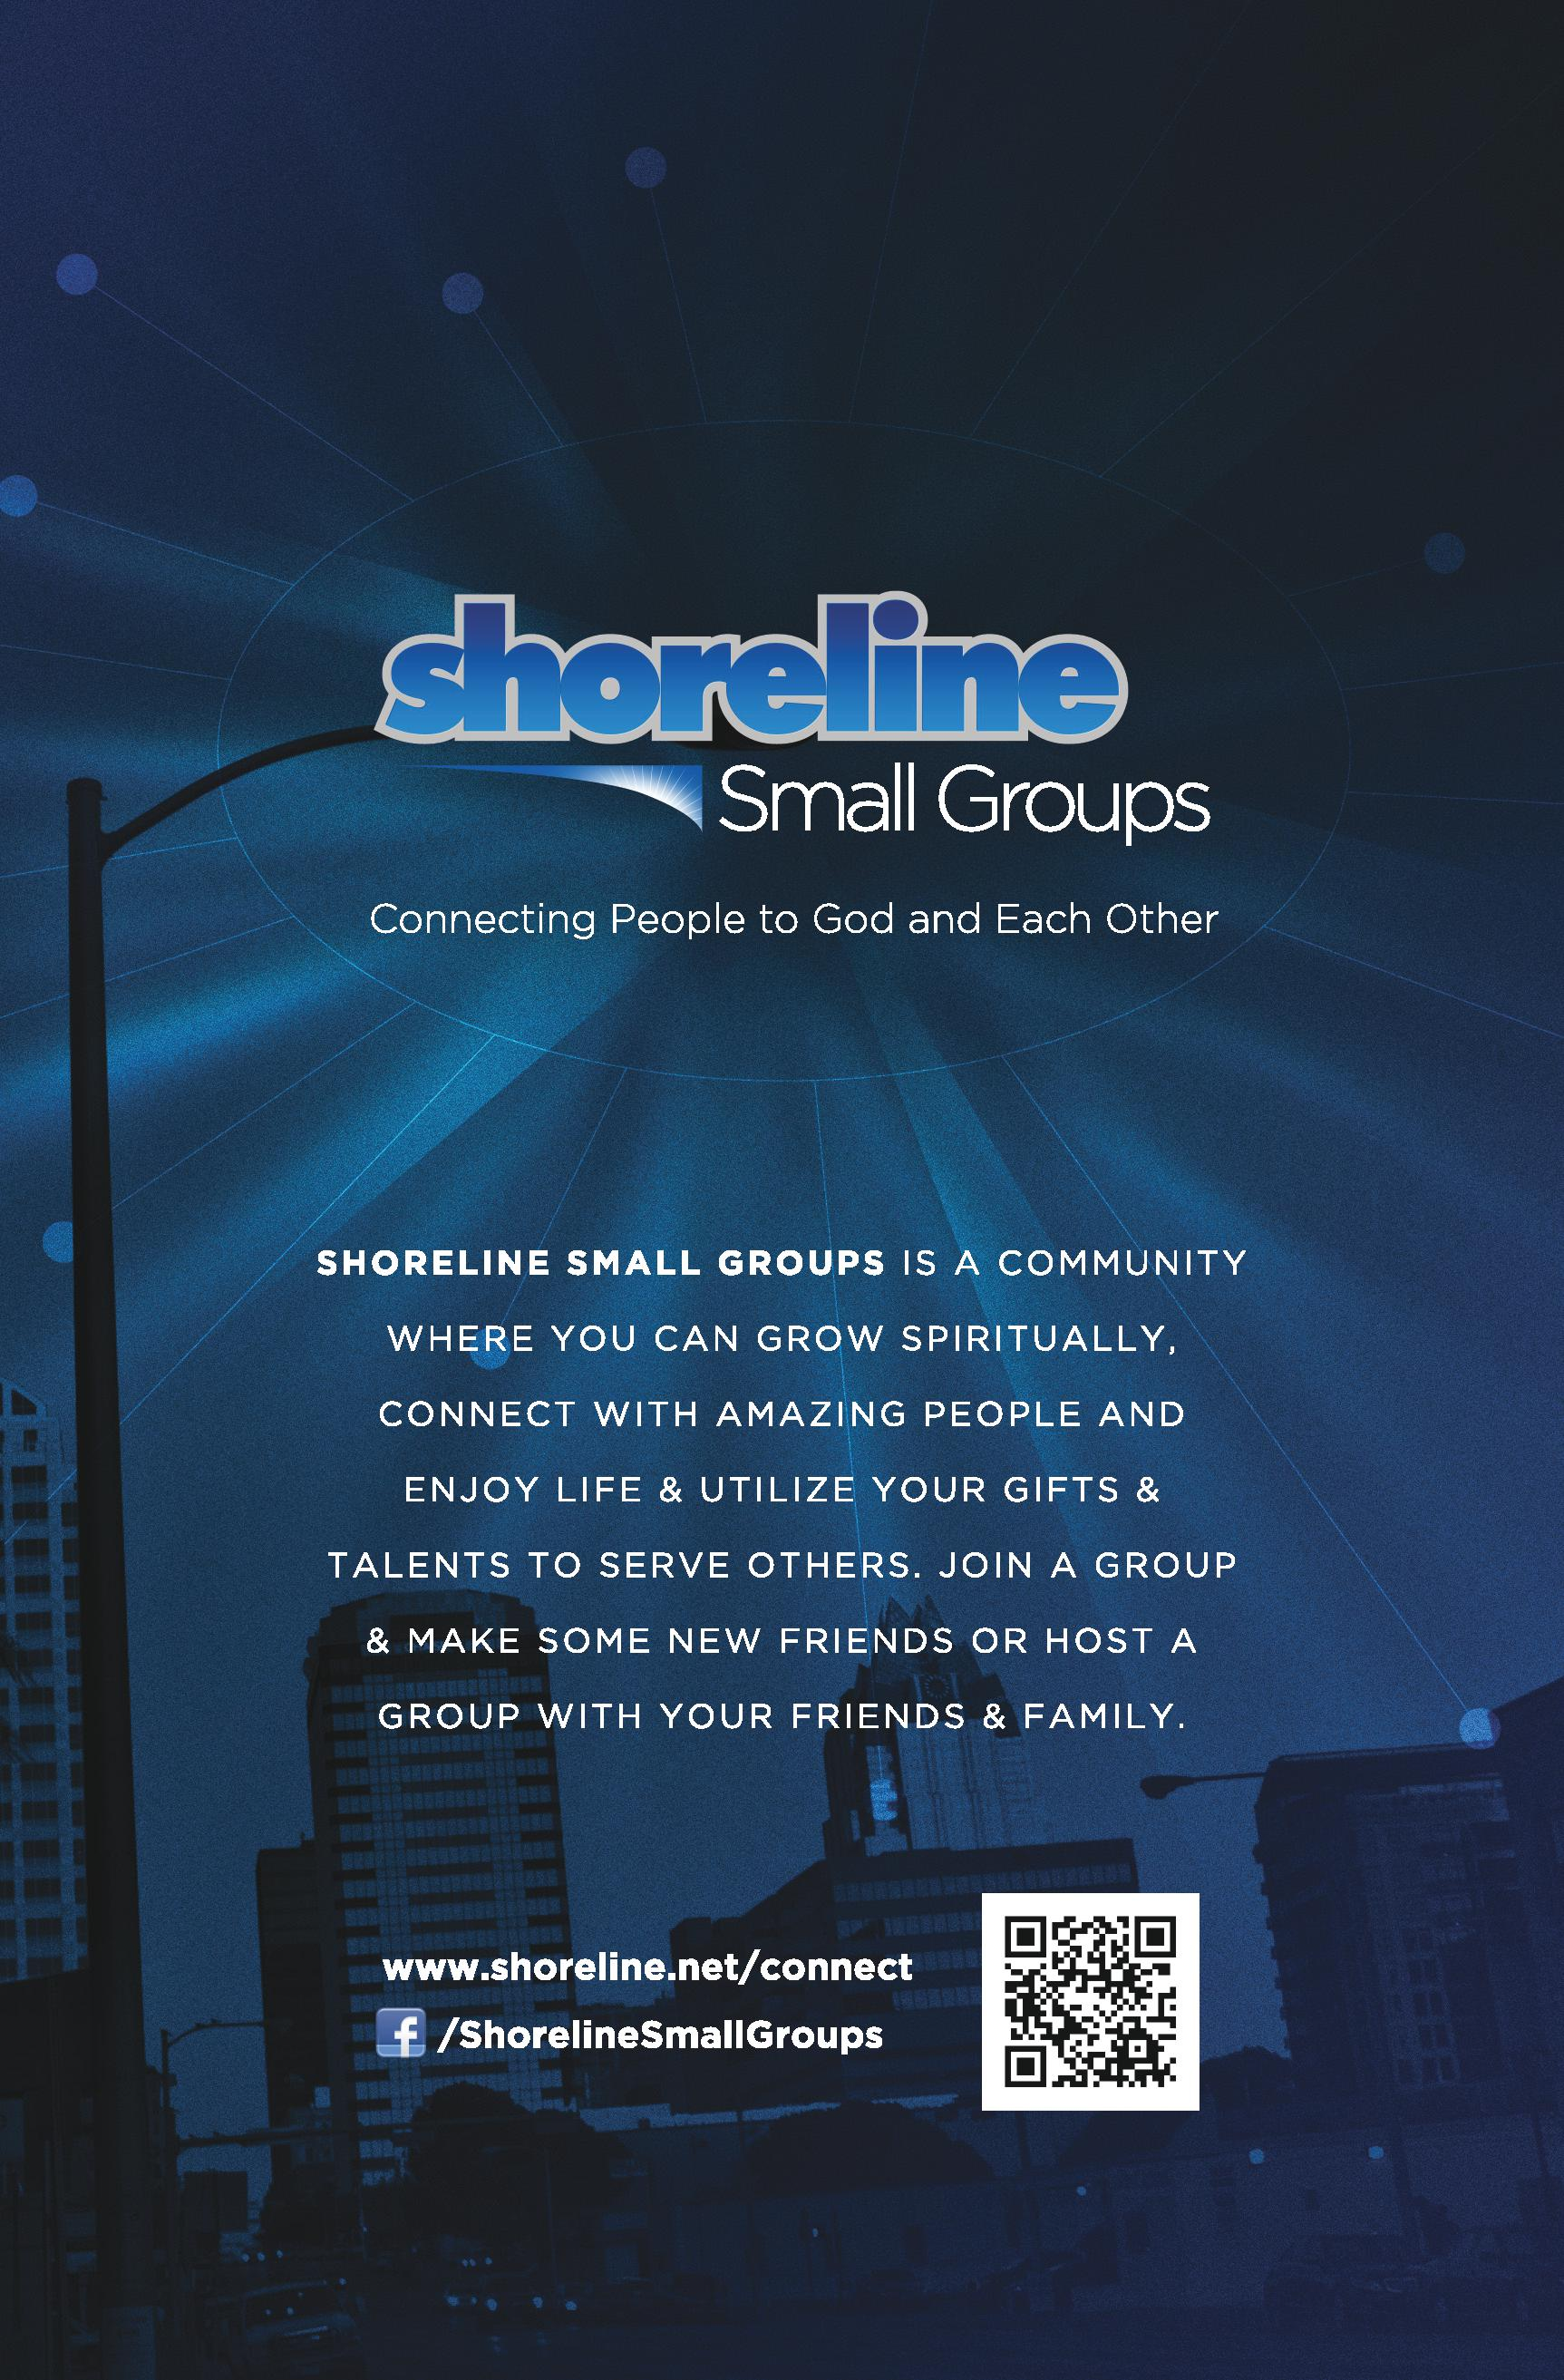 Shoreline Small Groups